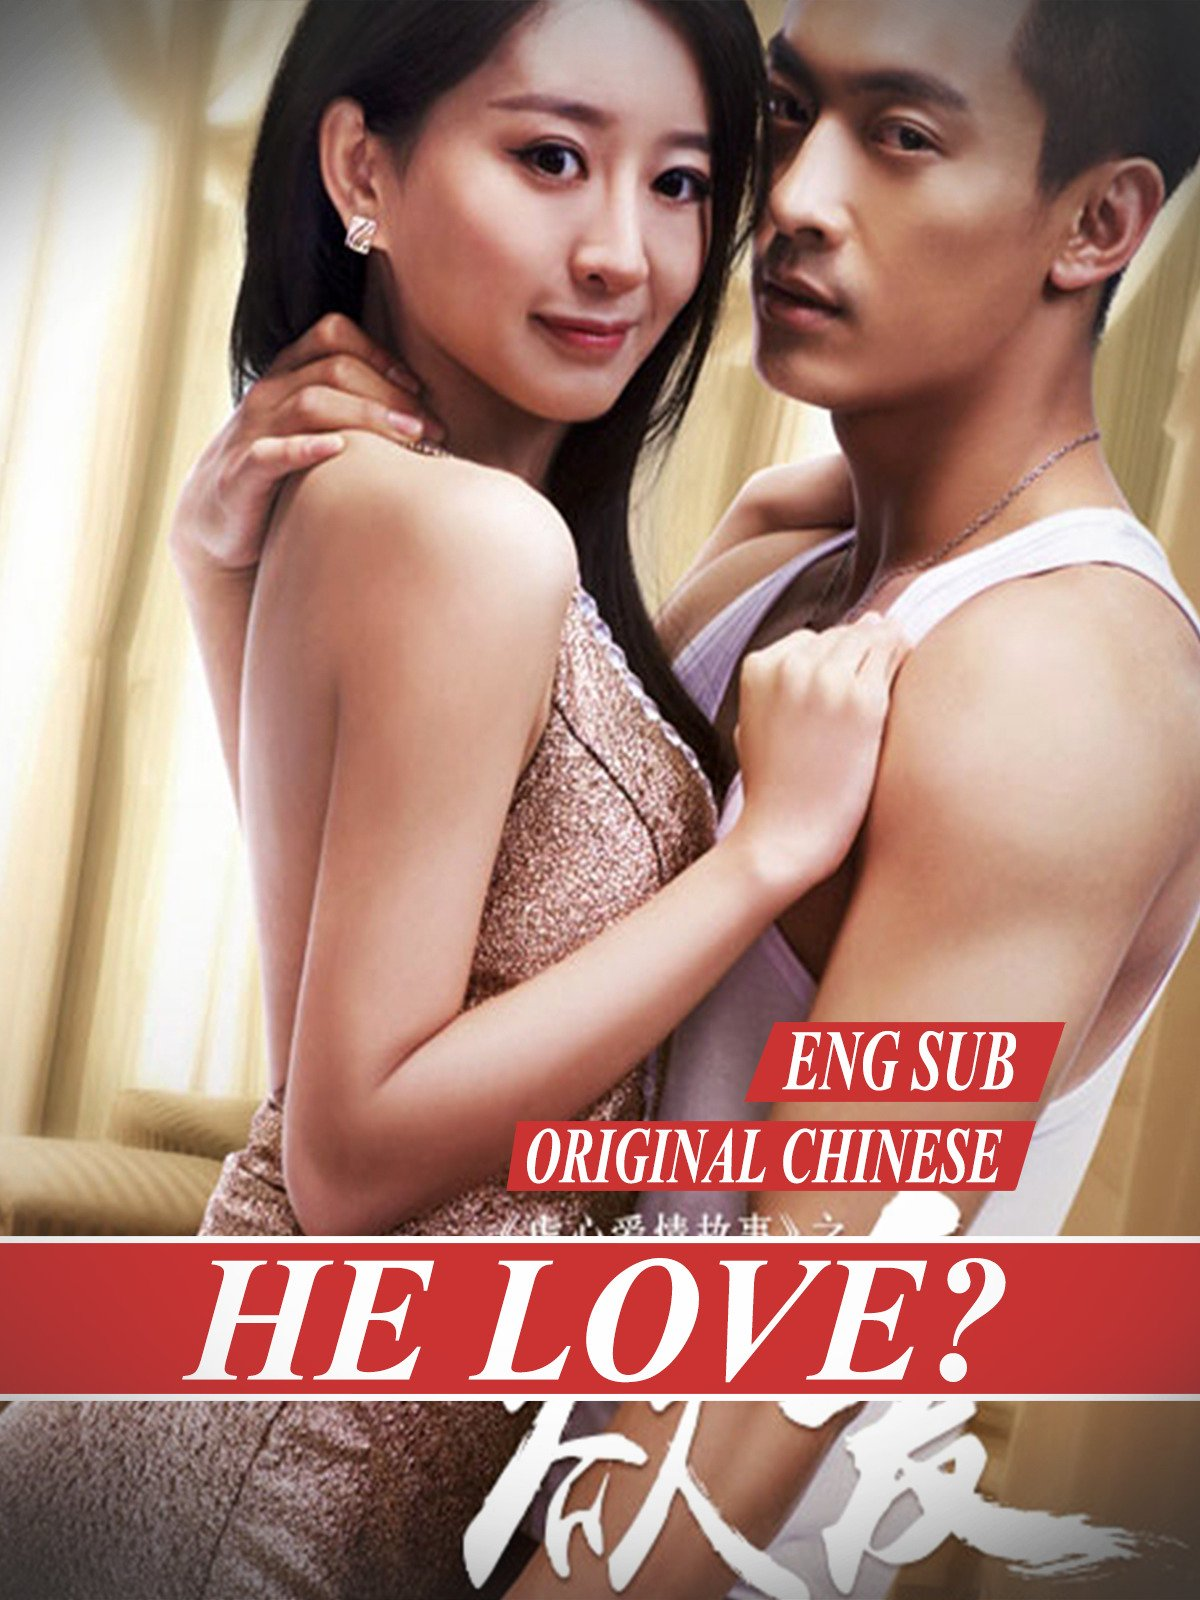 He Love? [Eng Sub] original Chinese